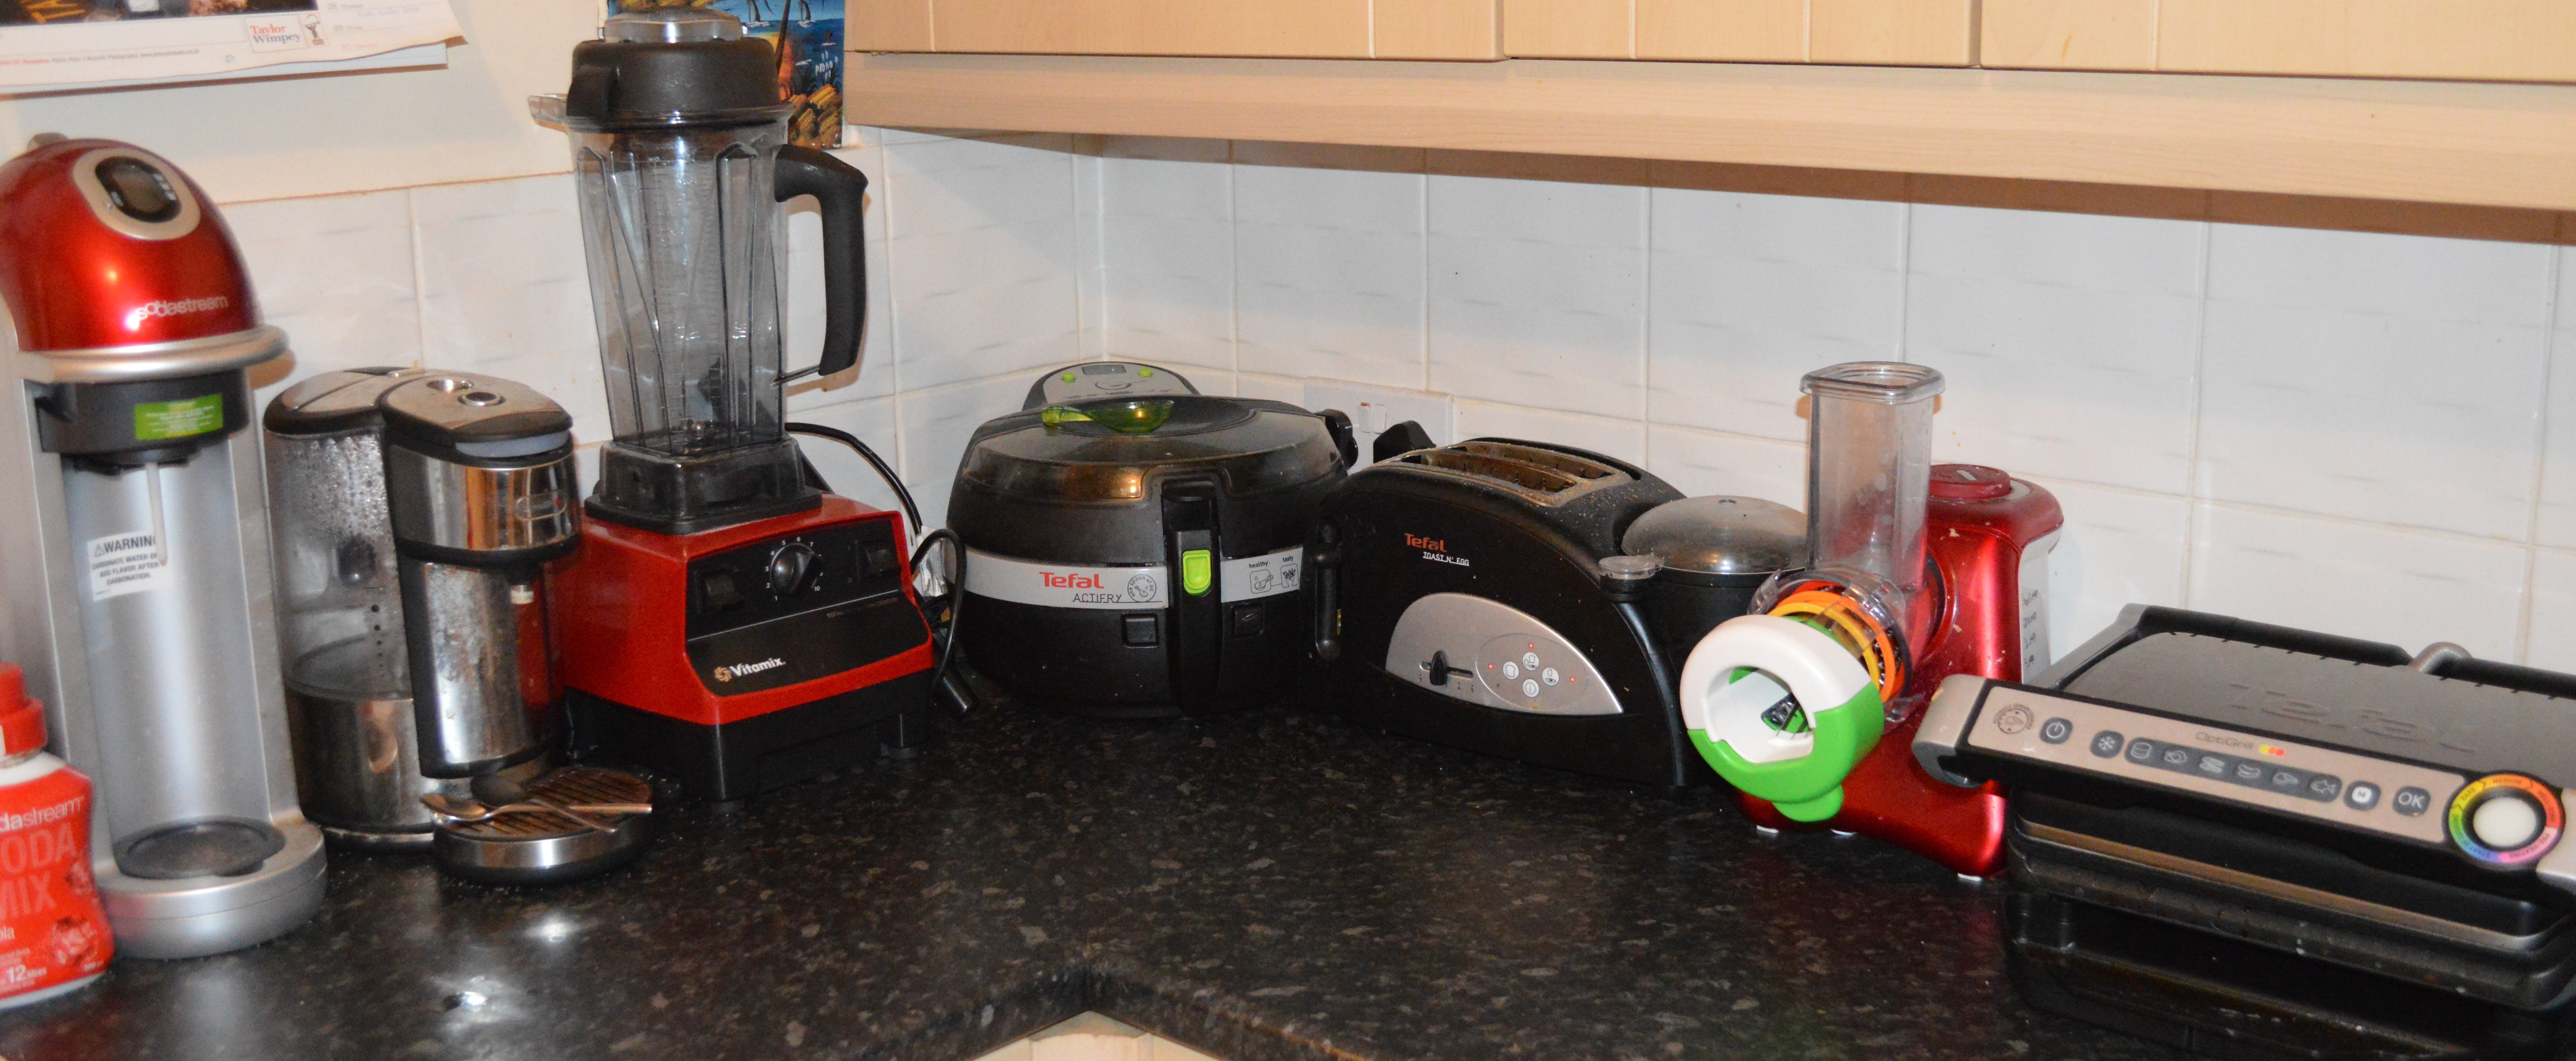 the kitchen appliance addict - crazy with twins